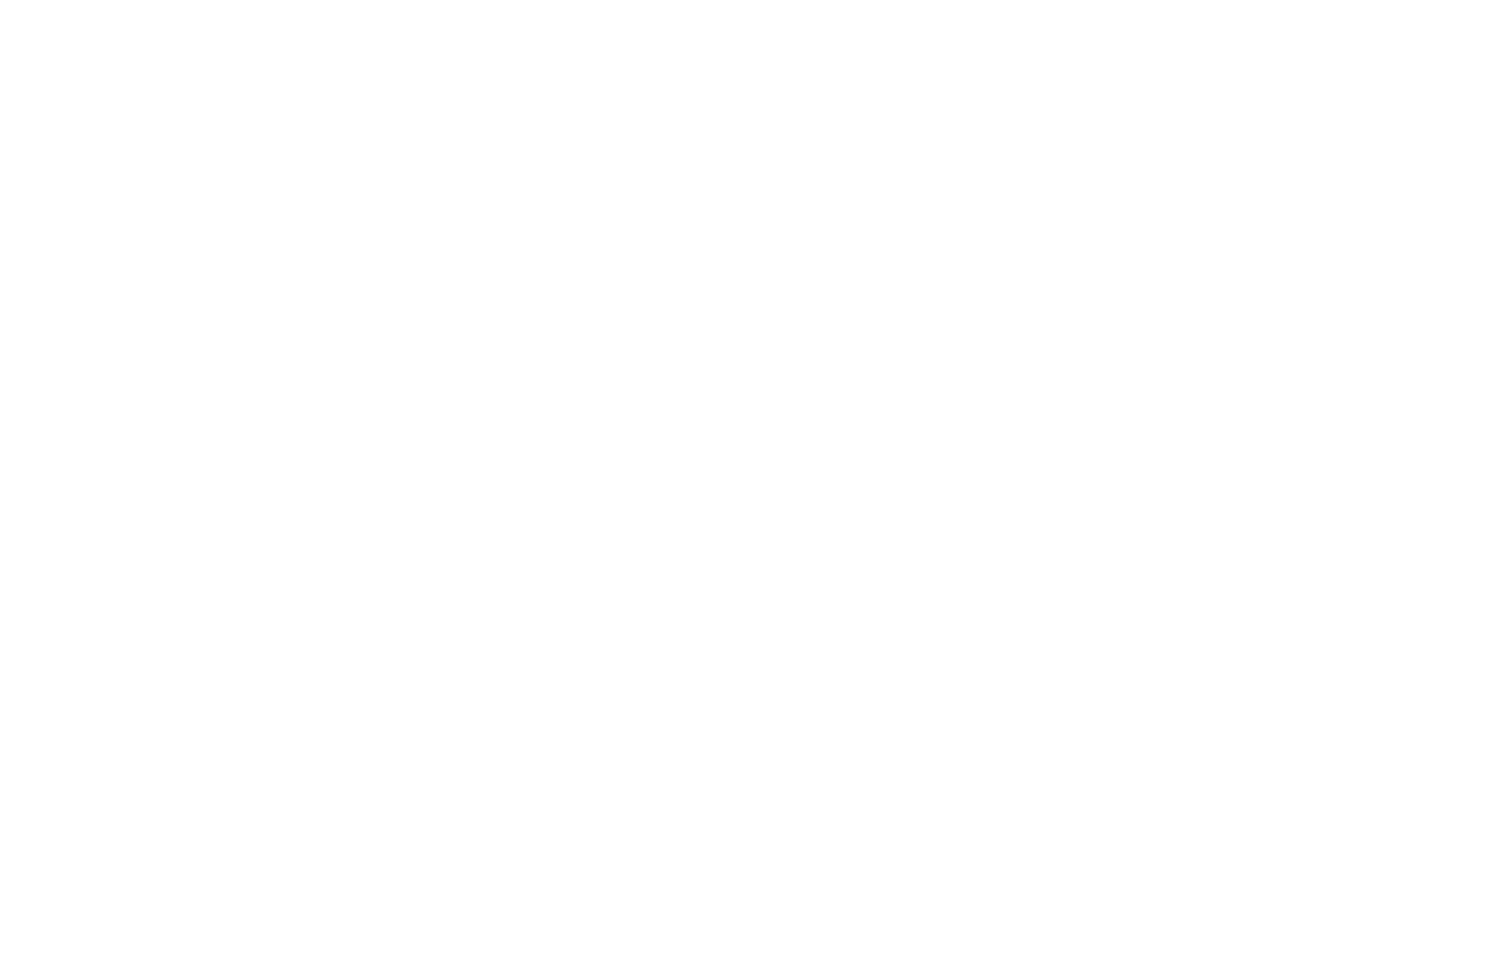 BETHANY MARIE PHOTOGRAPHY